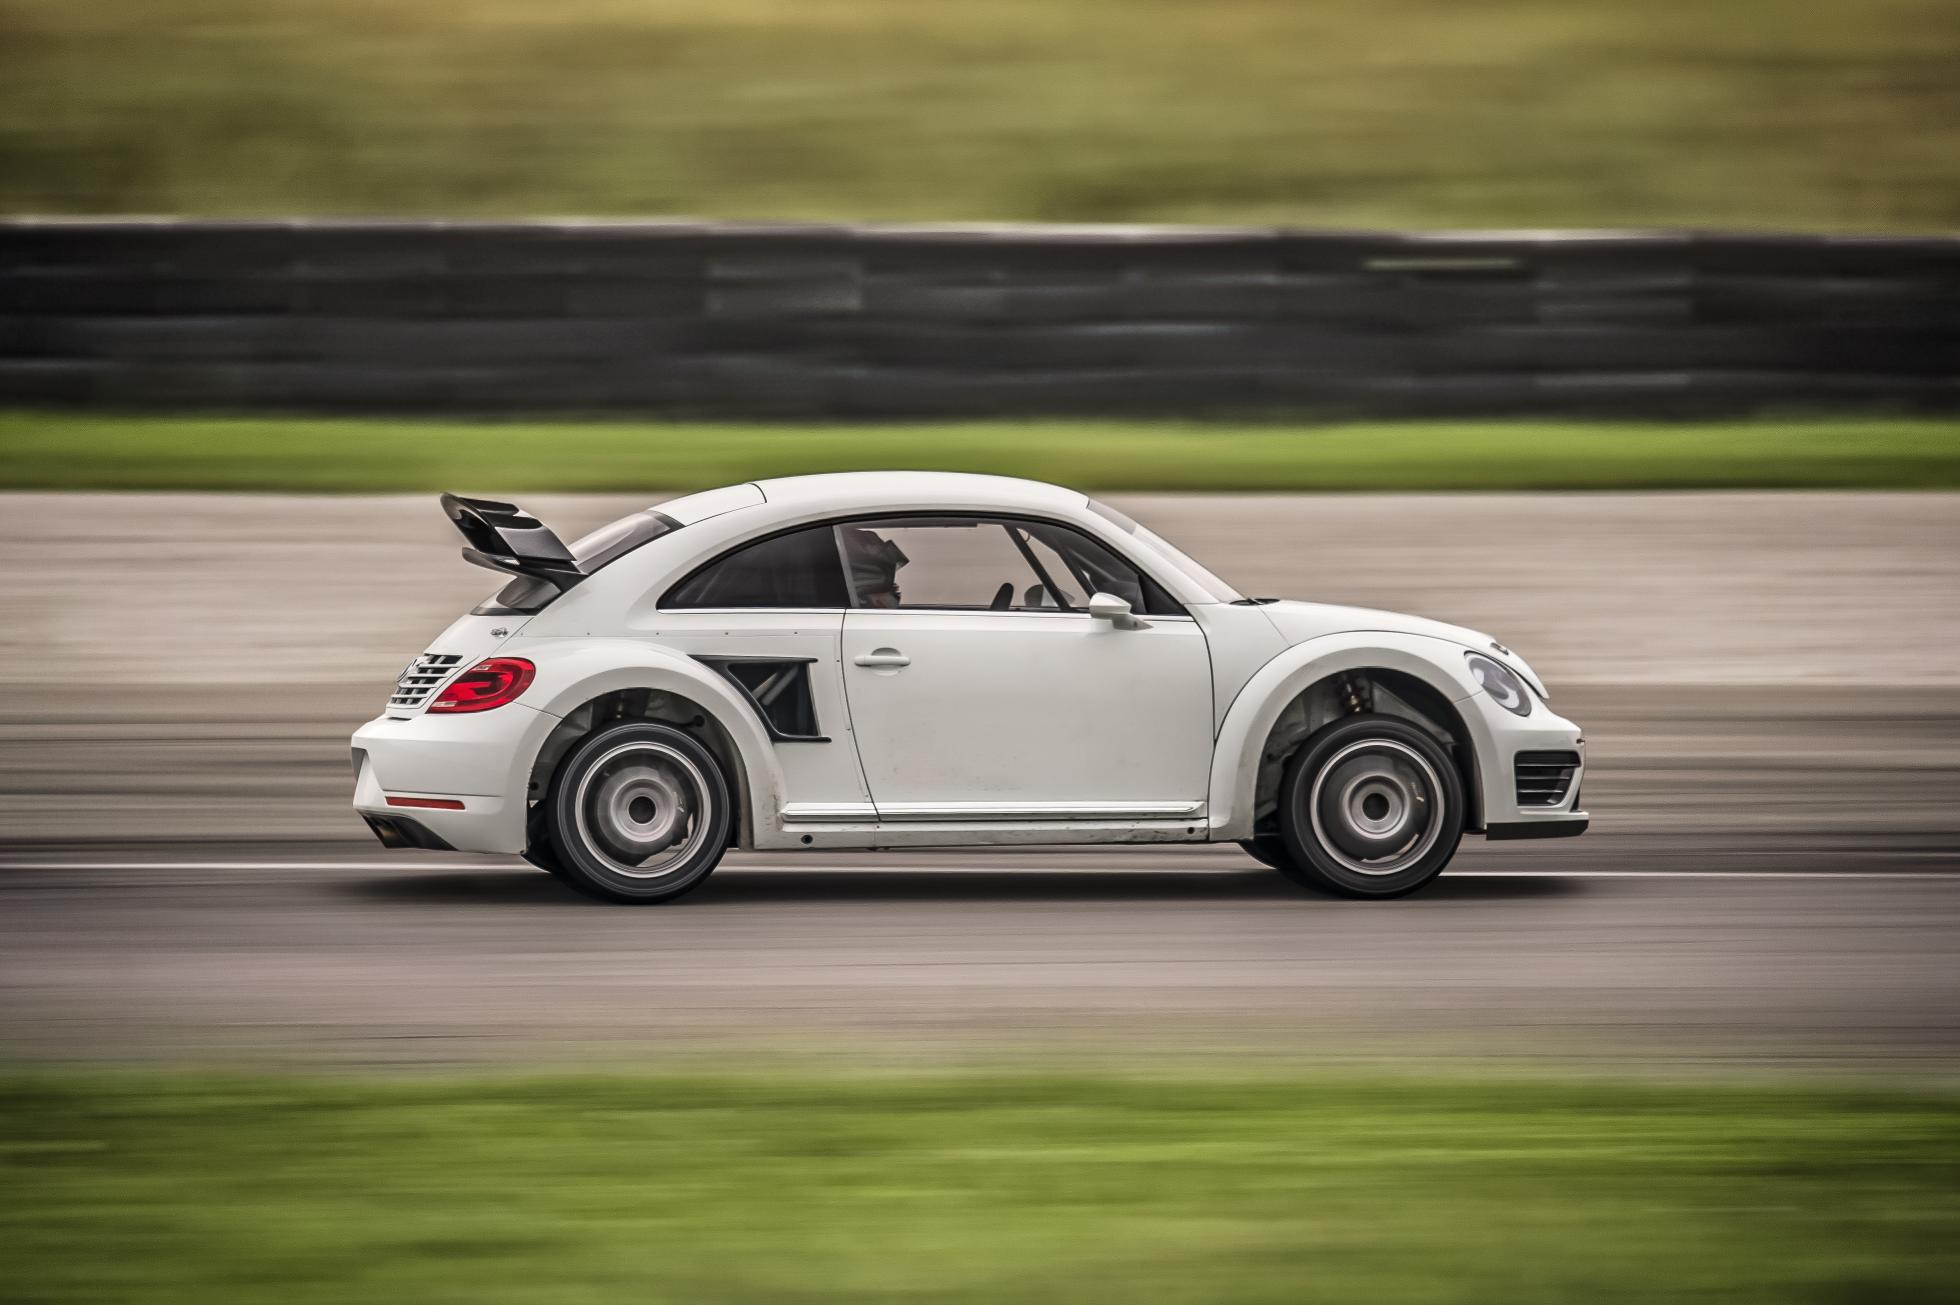 540 HP Rallycross Beetle Looks Really Exciting in Latest Trailer - autoevolution